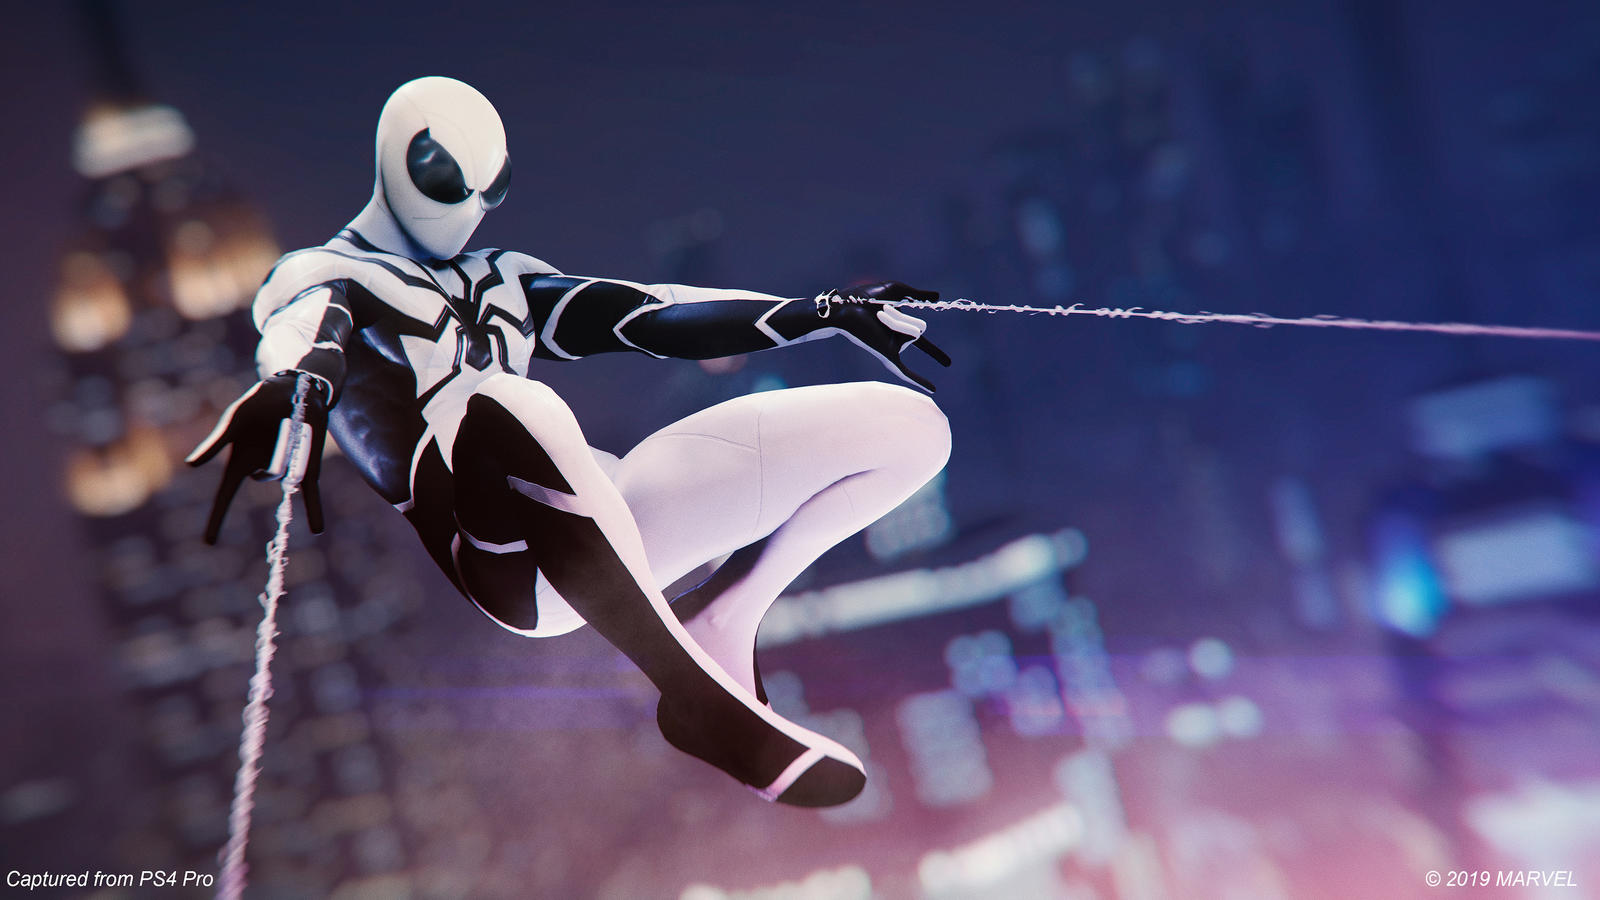 Marvel's Spider-Man Future Foundation suit